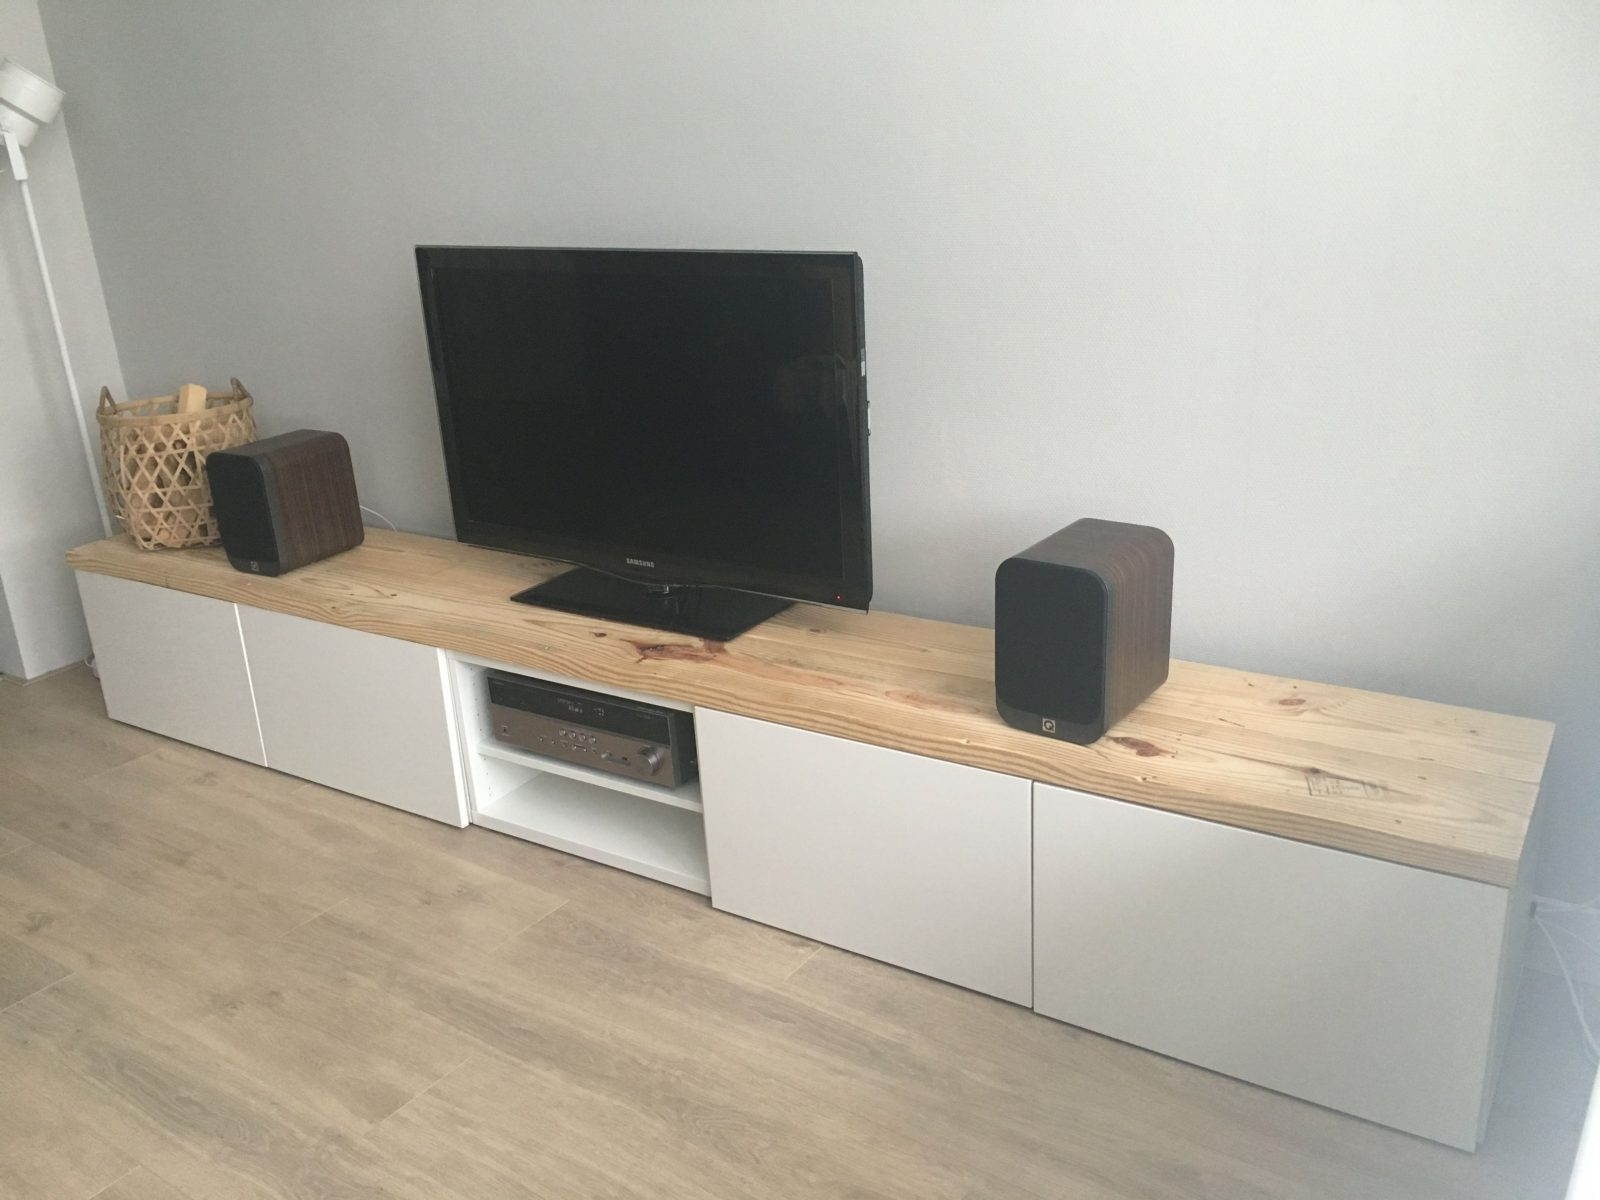 Ikea Besta Tv Hack …  Mueble Para Televisión Moderno  Ikea von Besta Tv Bank Weiß Photo